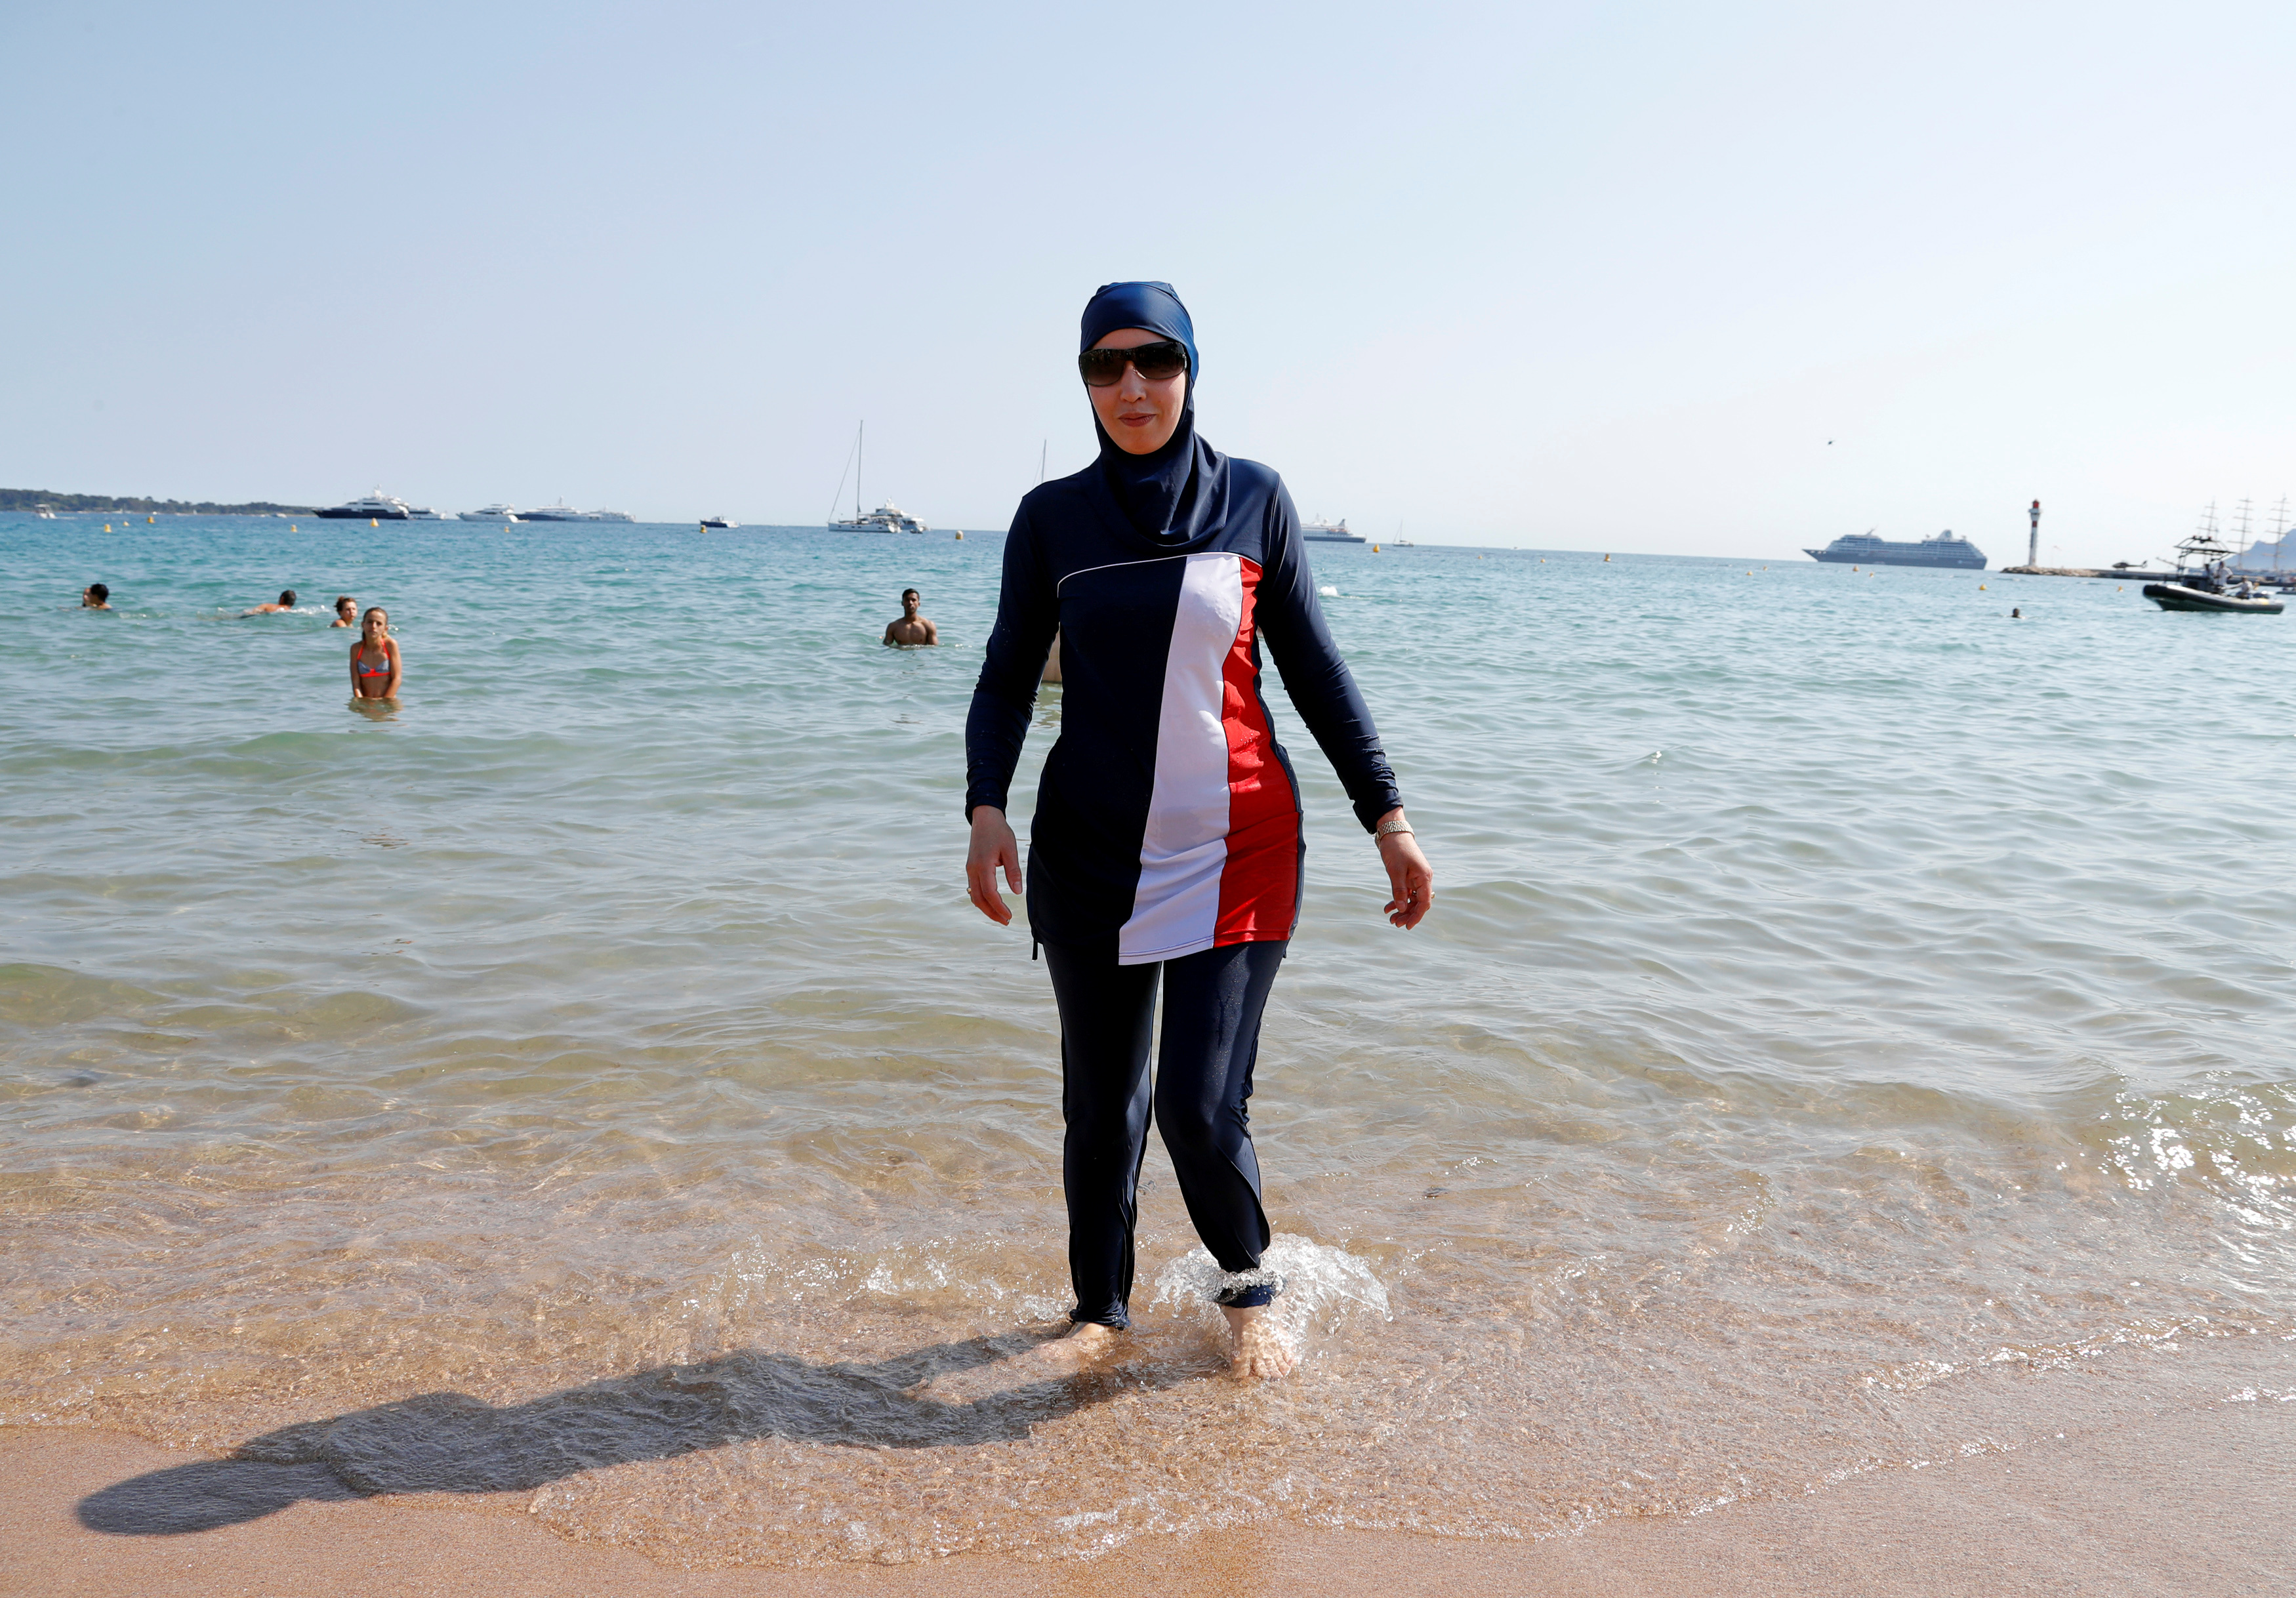 70th Cannes Film Festival - Cannes, France. 27/05/2017. Karima, wearing a full-body burkini swimsuit, walks on a beach in Cannes after the call to support the wearing of burkinis by businessman and political activist Rachid Nekkaz. REUTERS/Eric Gaillard